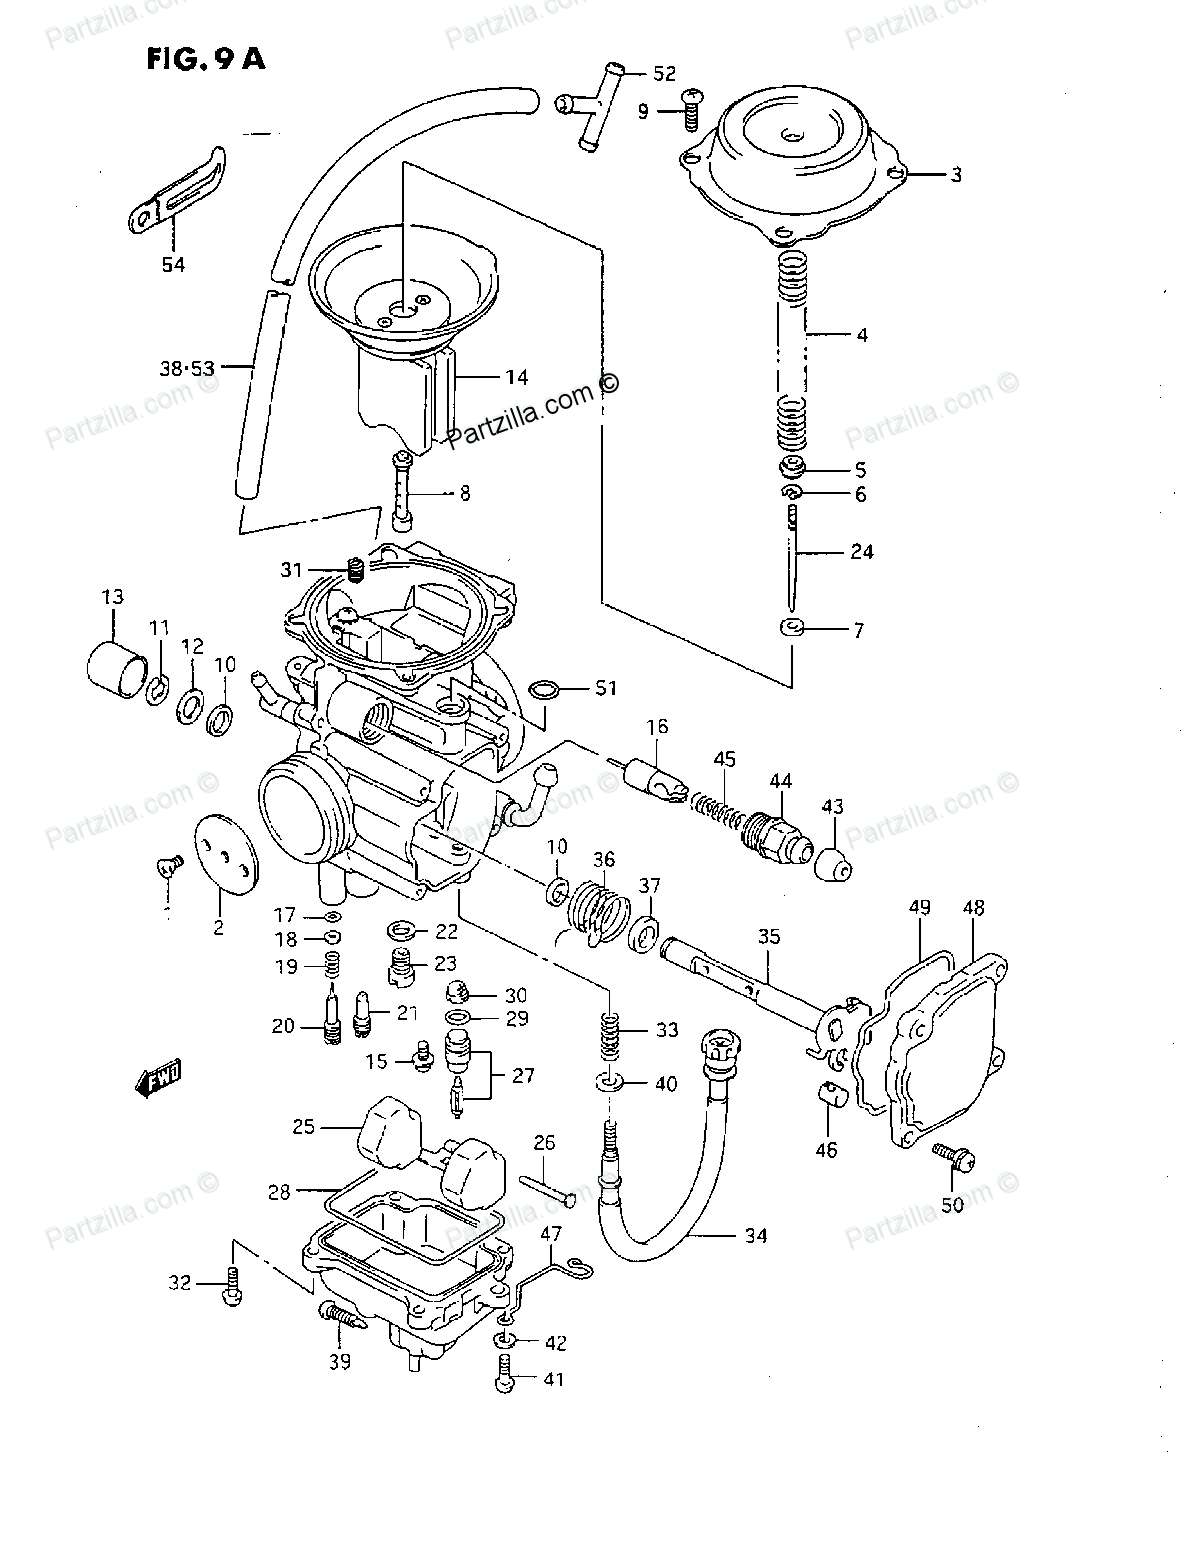 wiring diagram for suzuki gsxr 600 2008